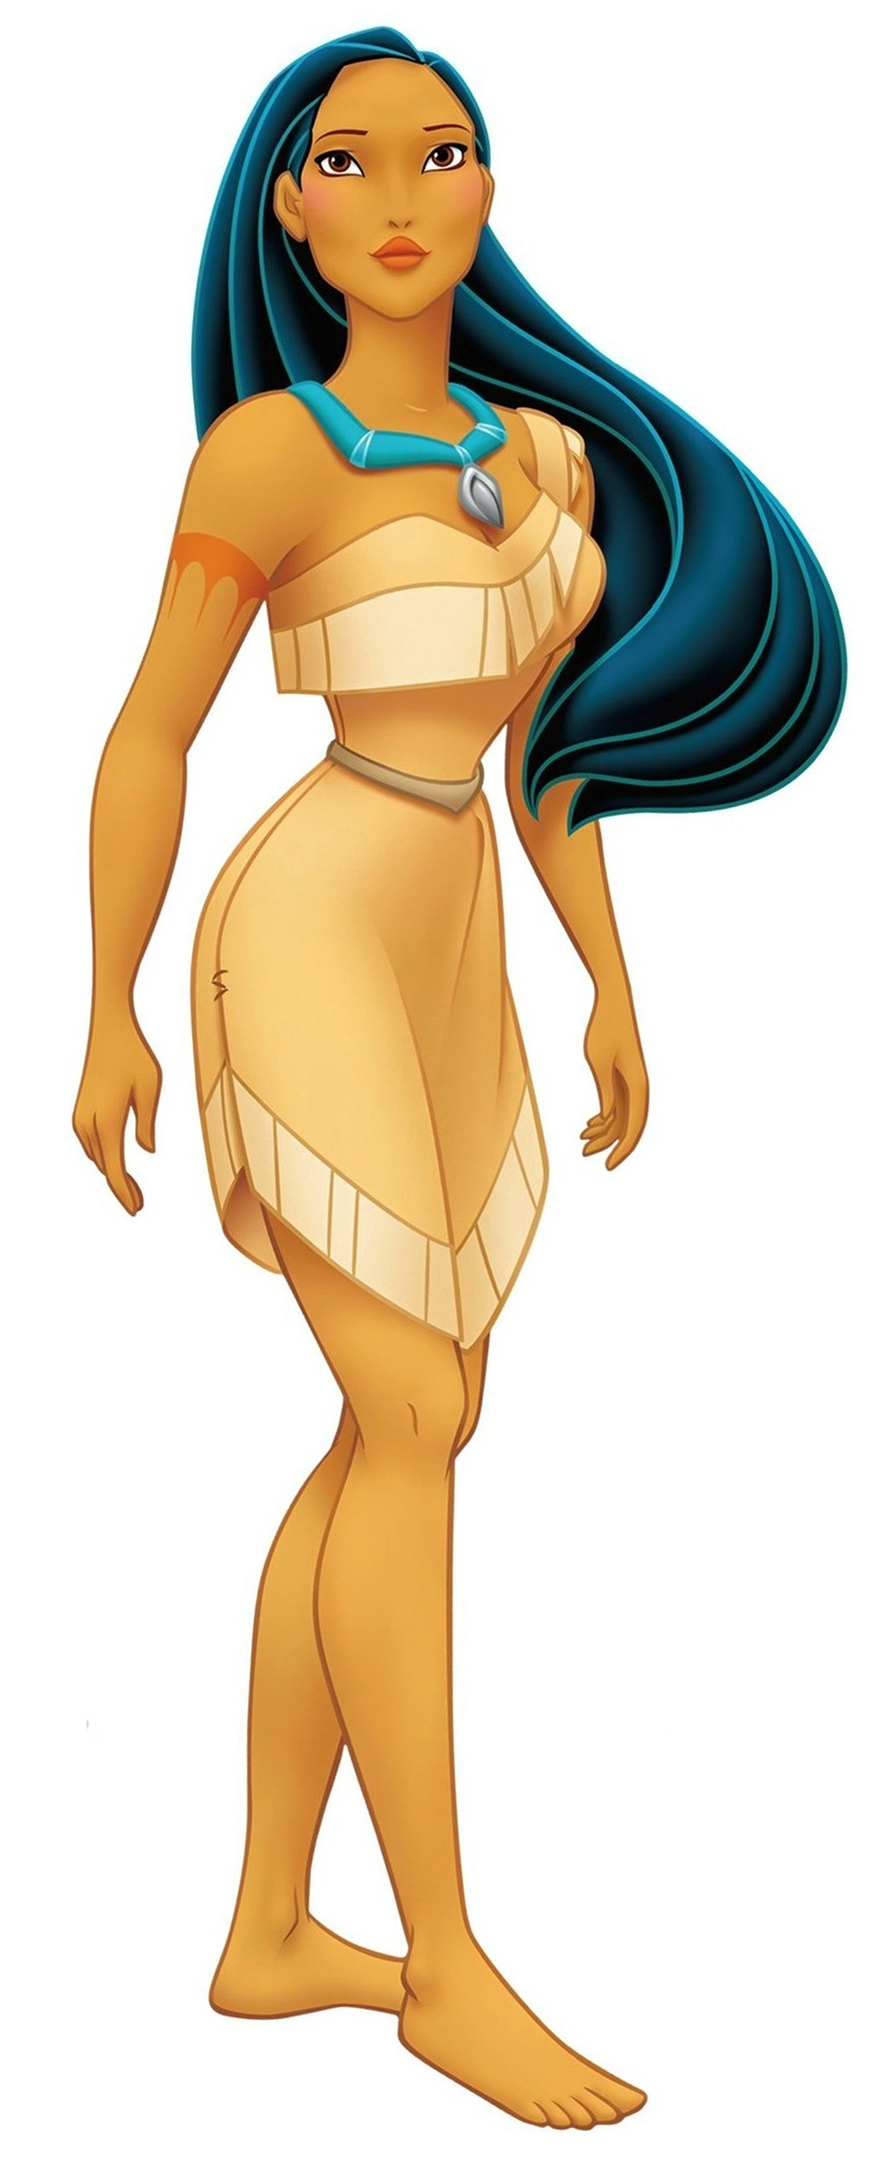 Pocahontas | Disney Wiki | FANDOM powered by Wikia